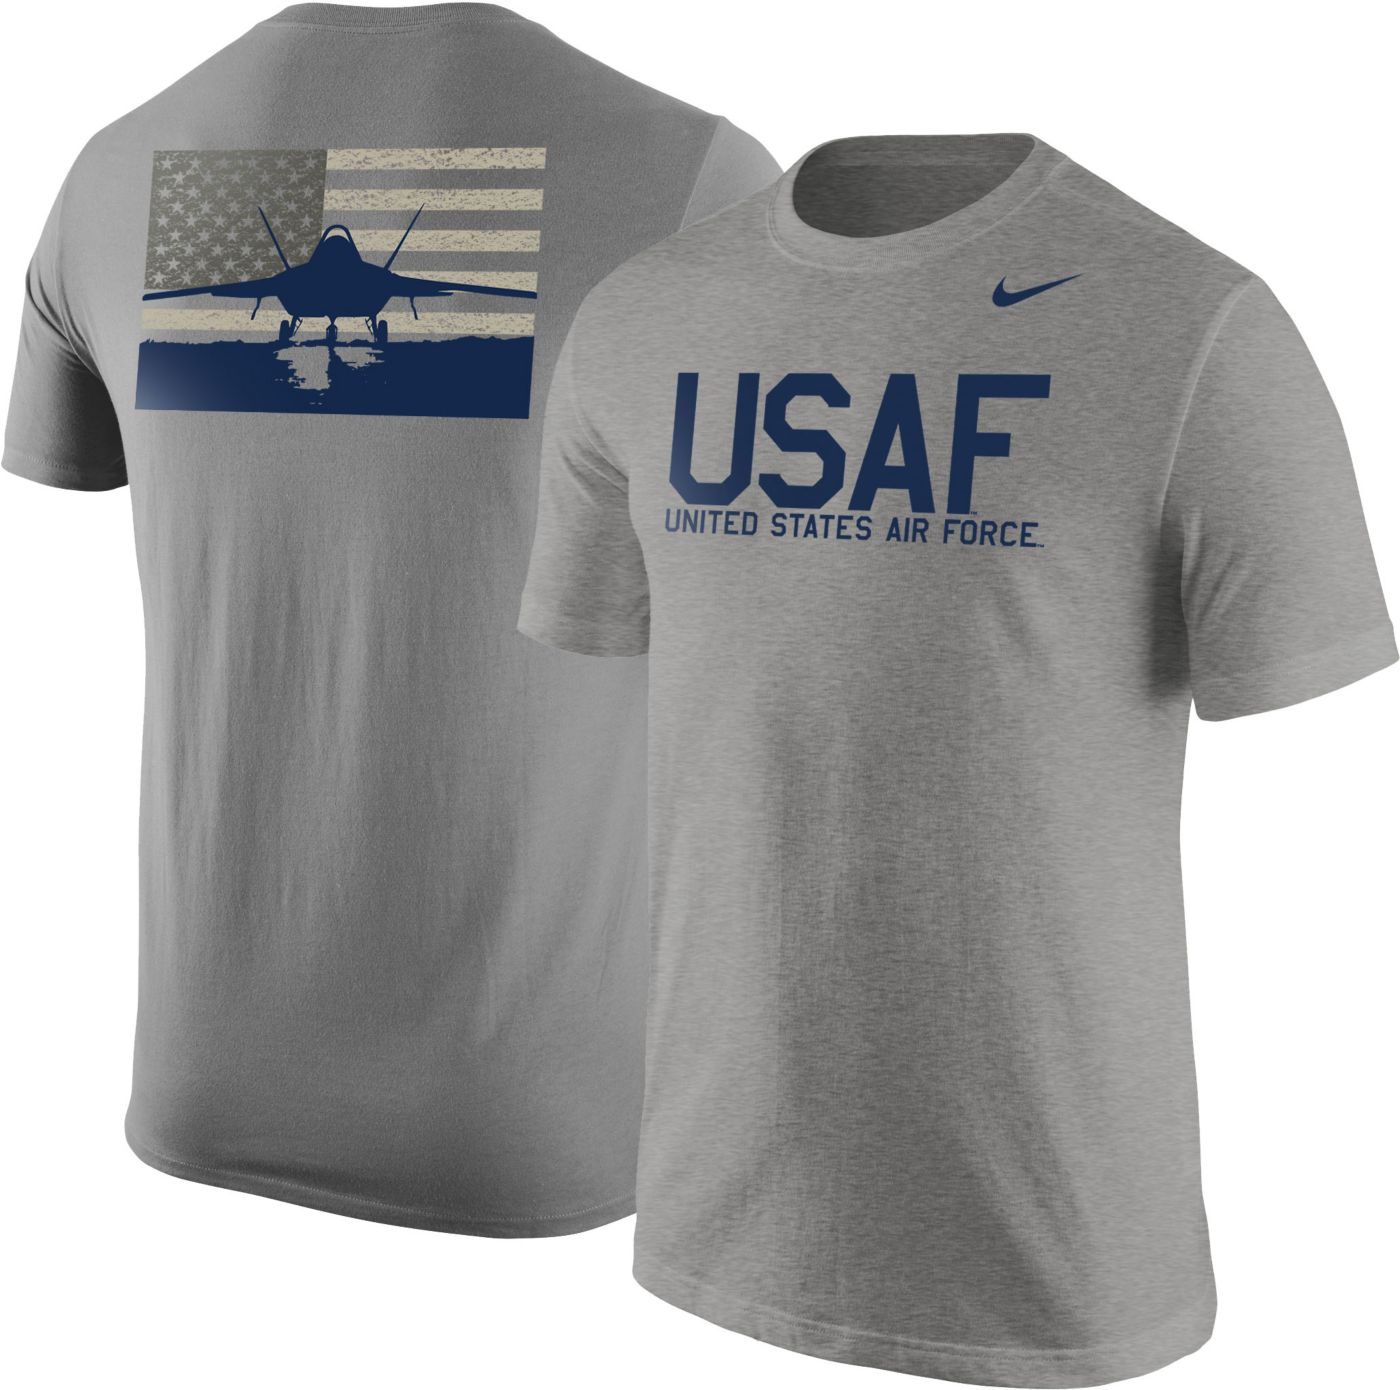 Nike United States Air Force Grey Fighter Jet Short Sleeve T-Shirt